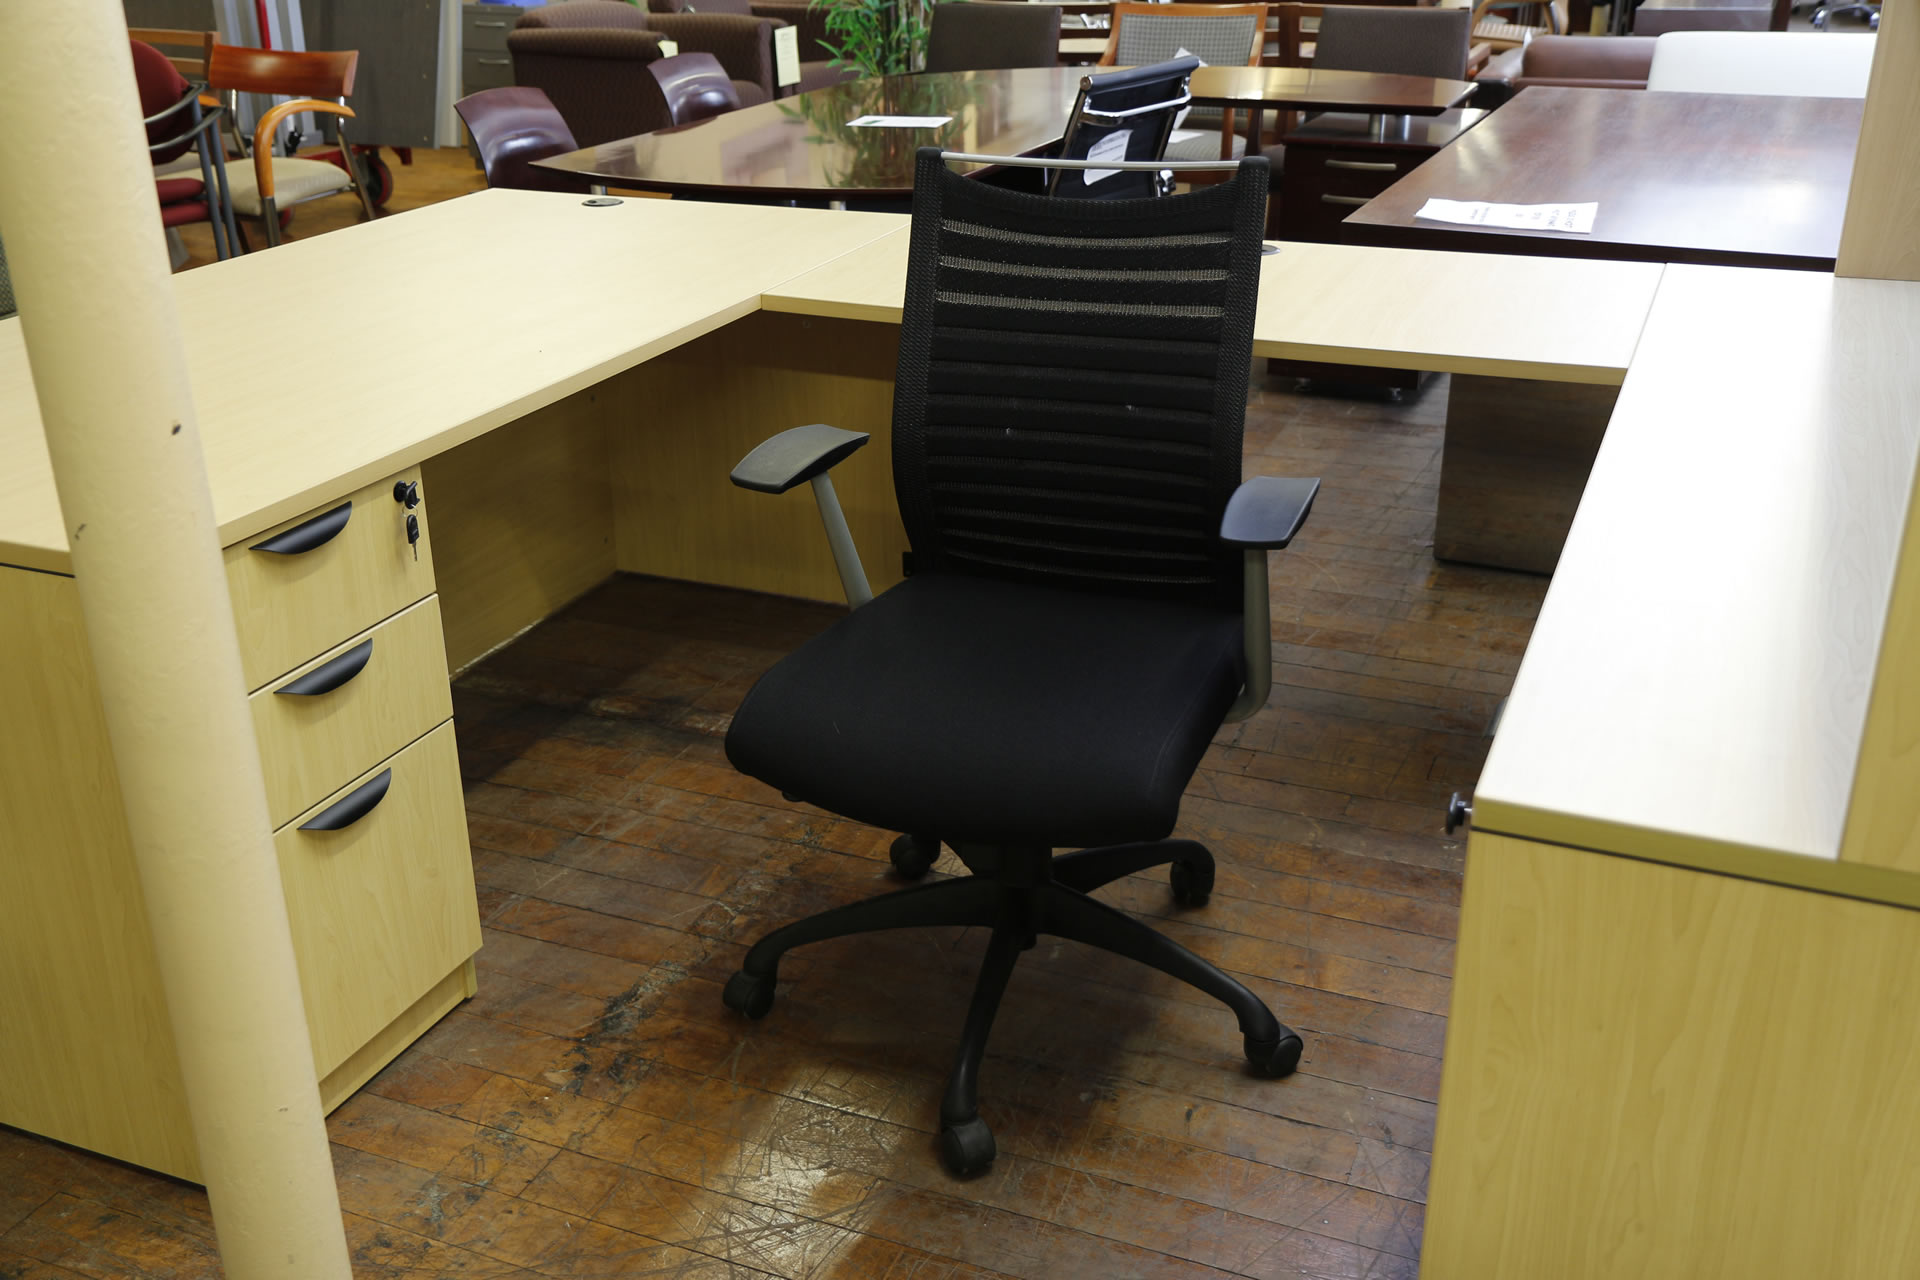 peartreeofficefurniture_peartreeofficefurniture_peartreeofficefurniture_2015-06-18_20-10-58.jpg